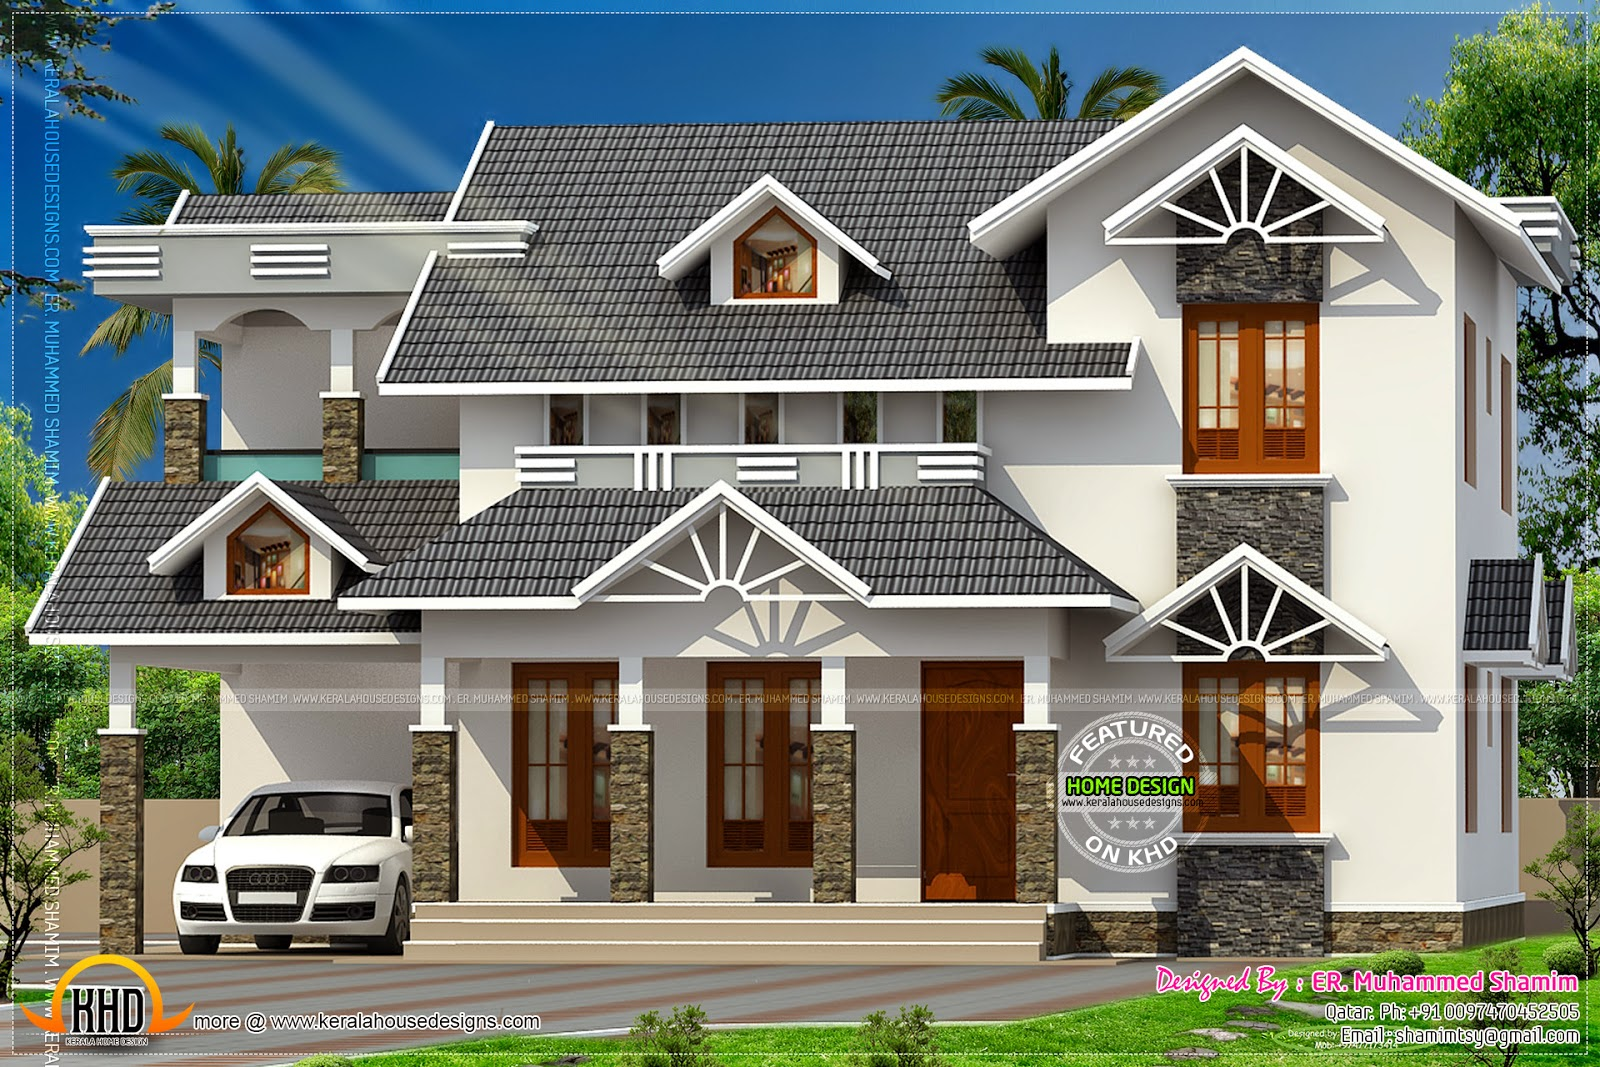 Nice sloped roof kerala home design kerala home design and floor plans - Nice house designs ...